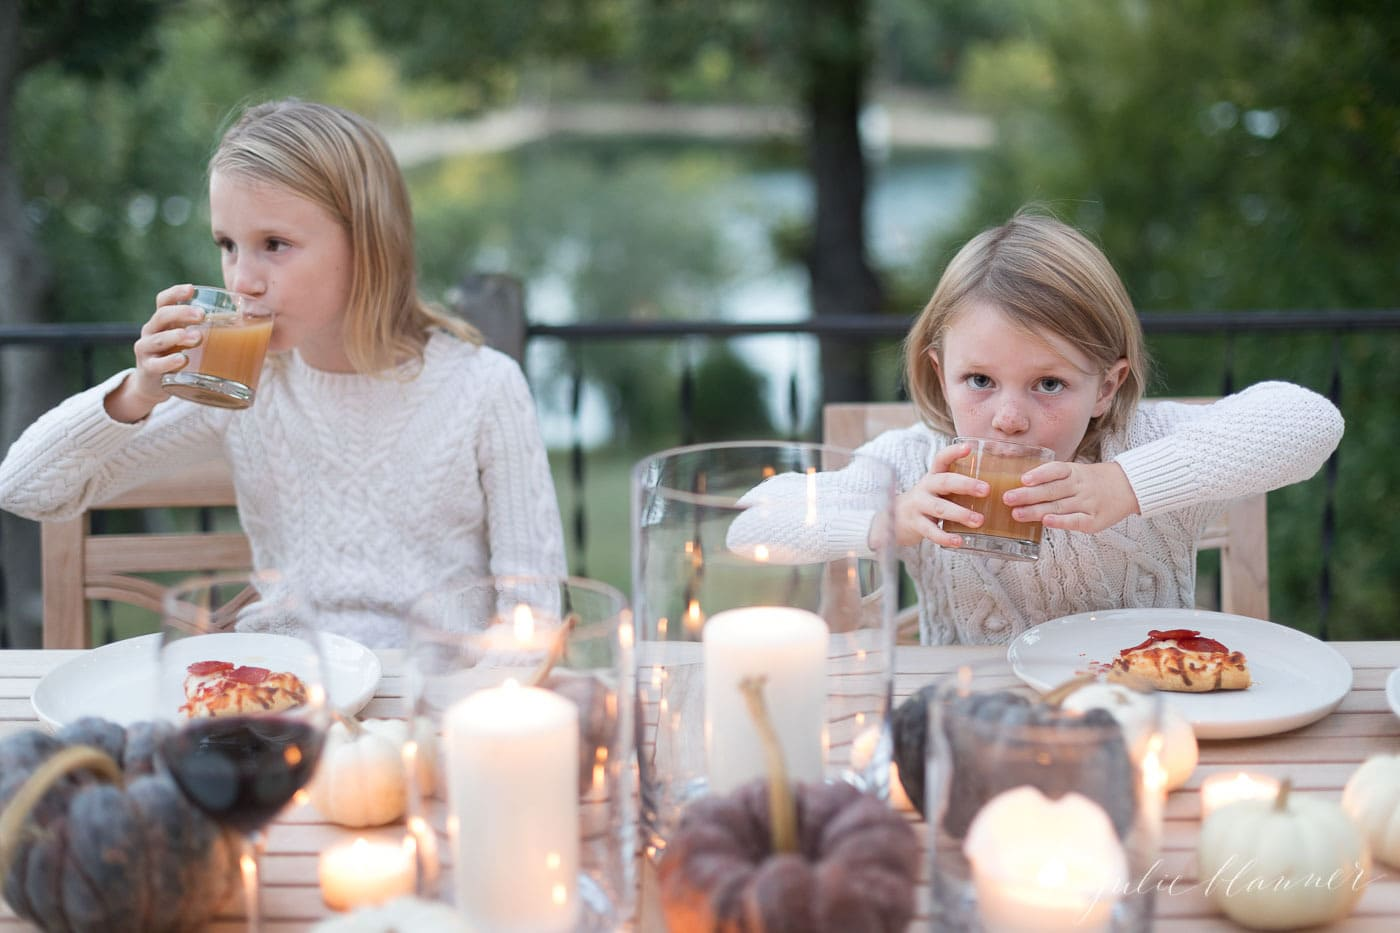 kids eating pizza and drinking apple cider at an outdoor dining table